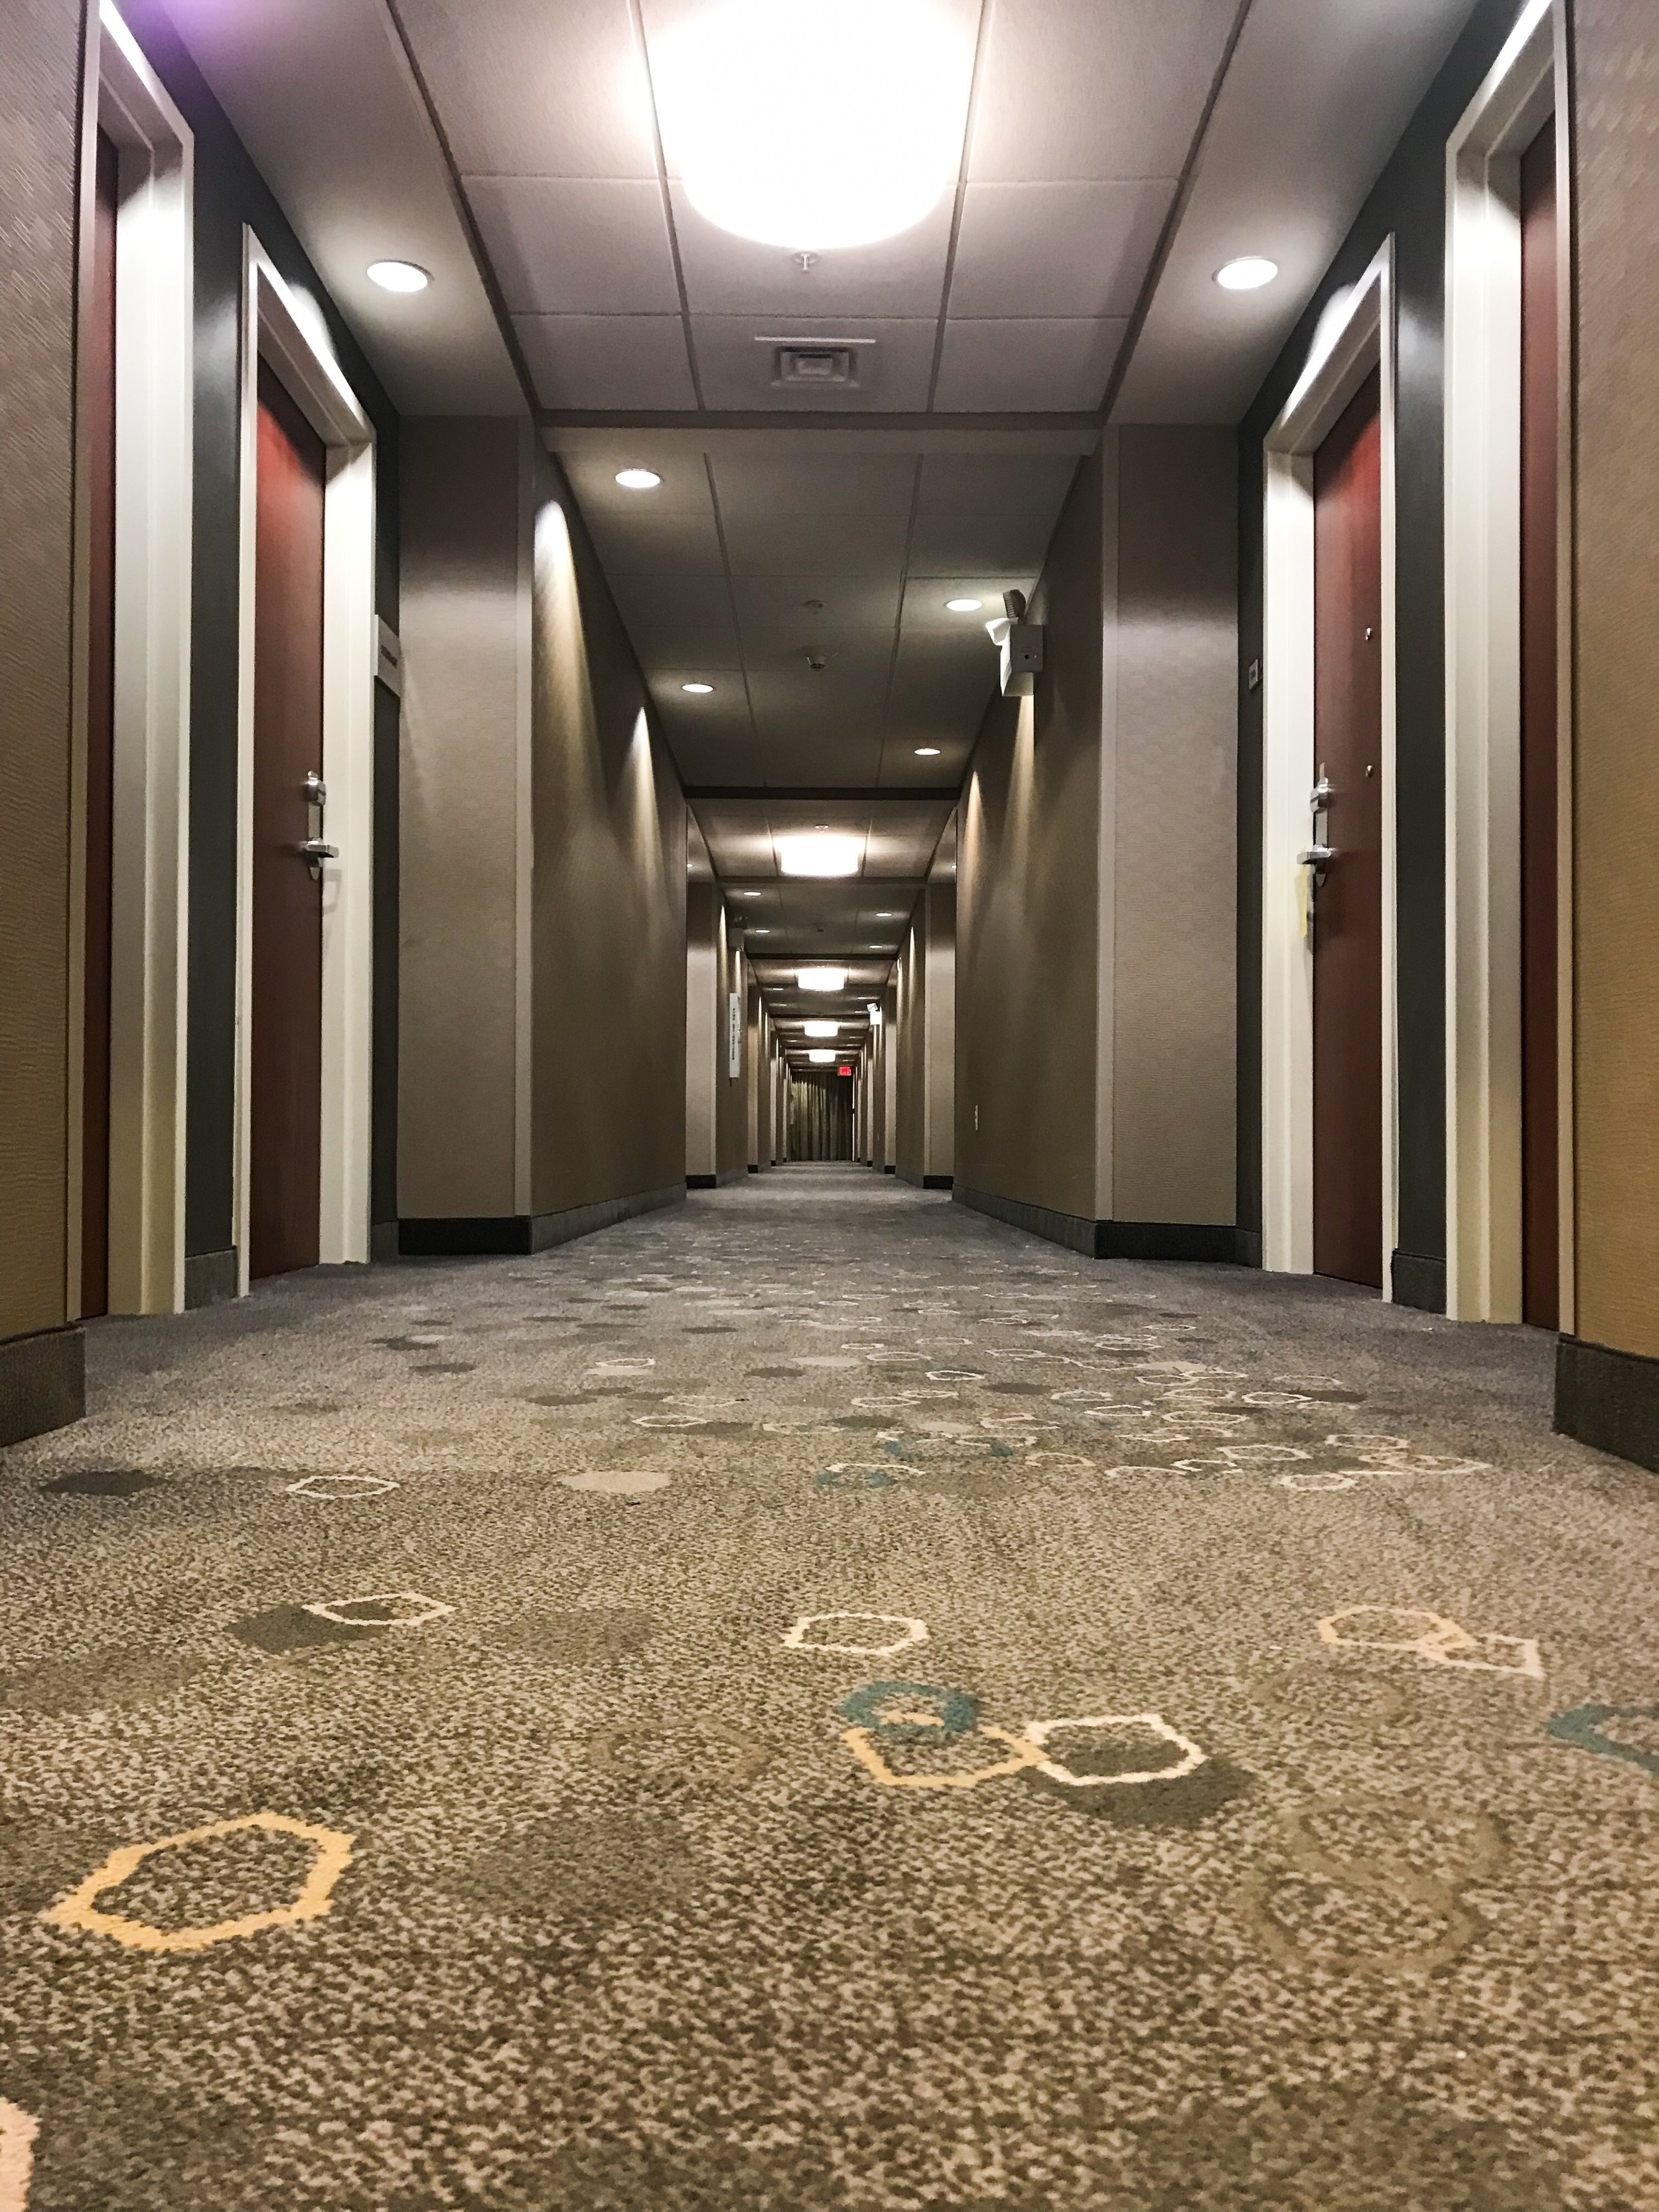 The hallway leading away from the elevators.